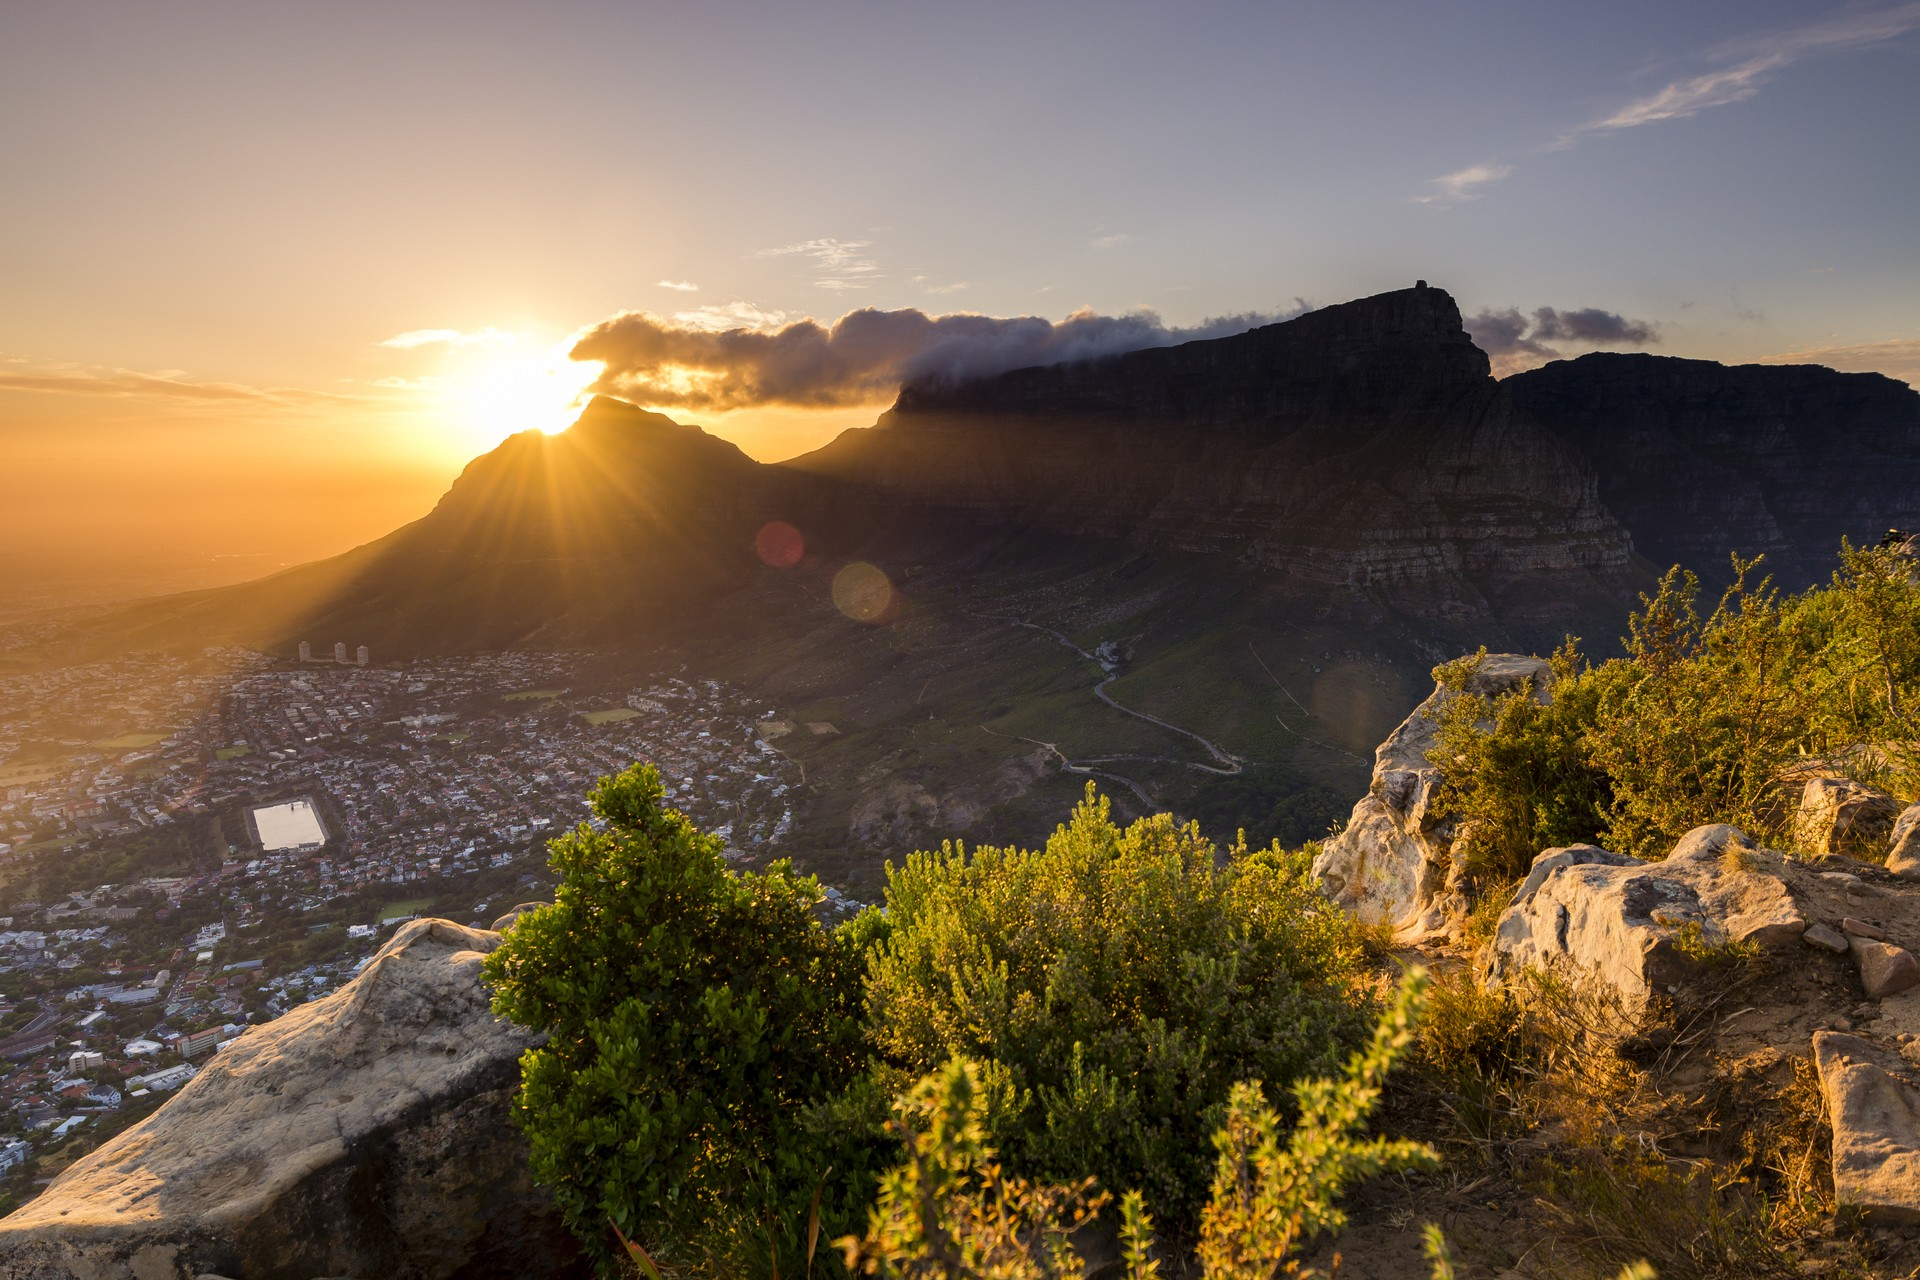 Sunrise over table mountain from lions head, Cape Town